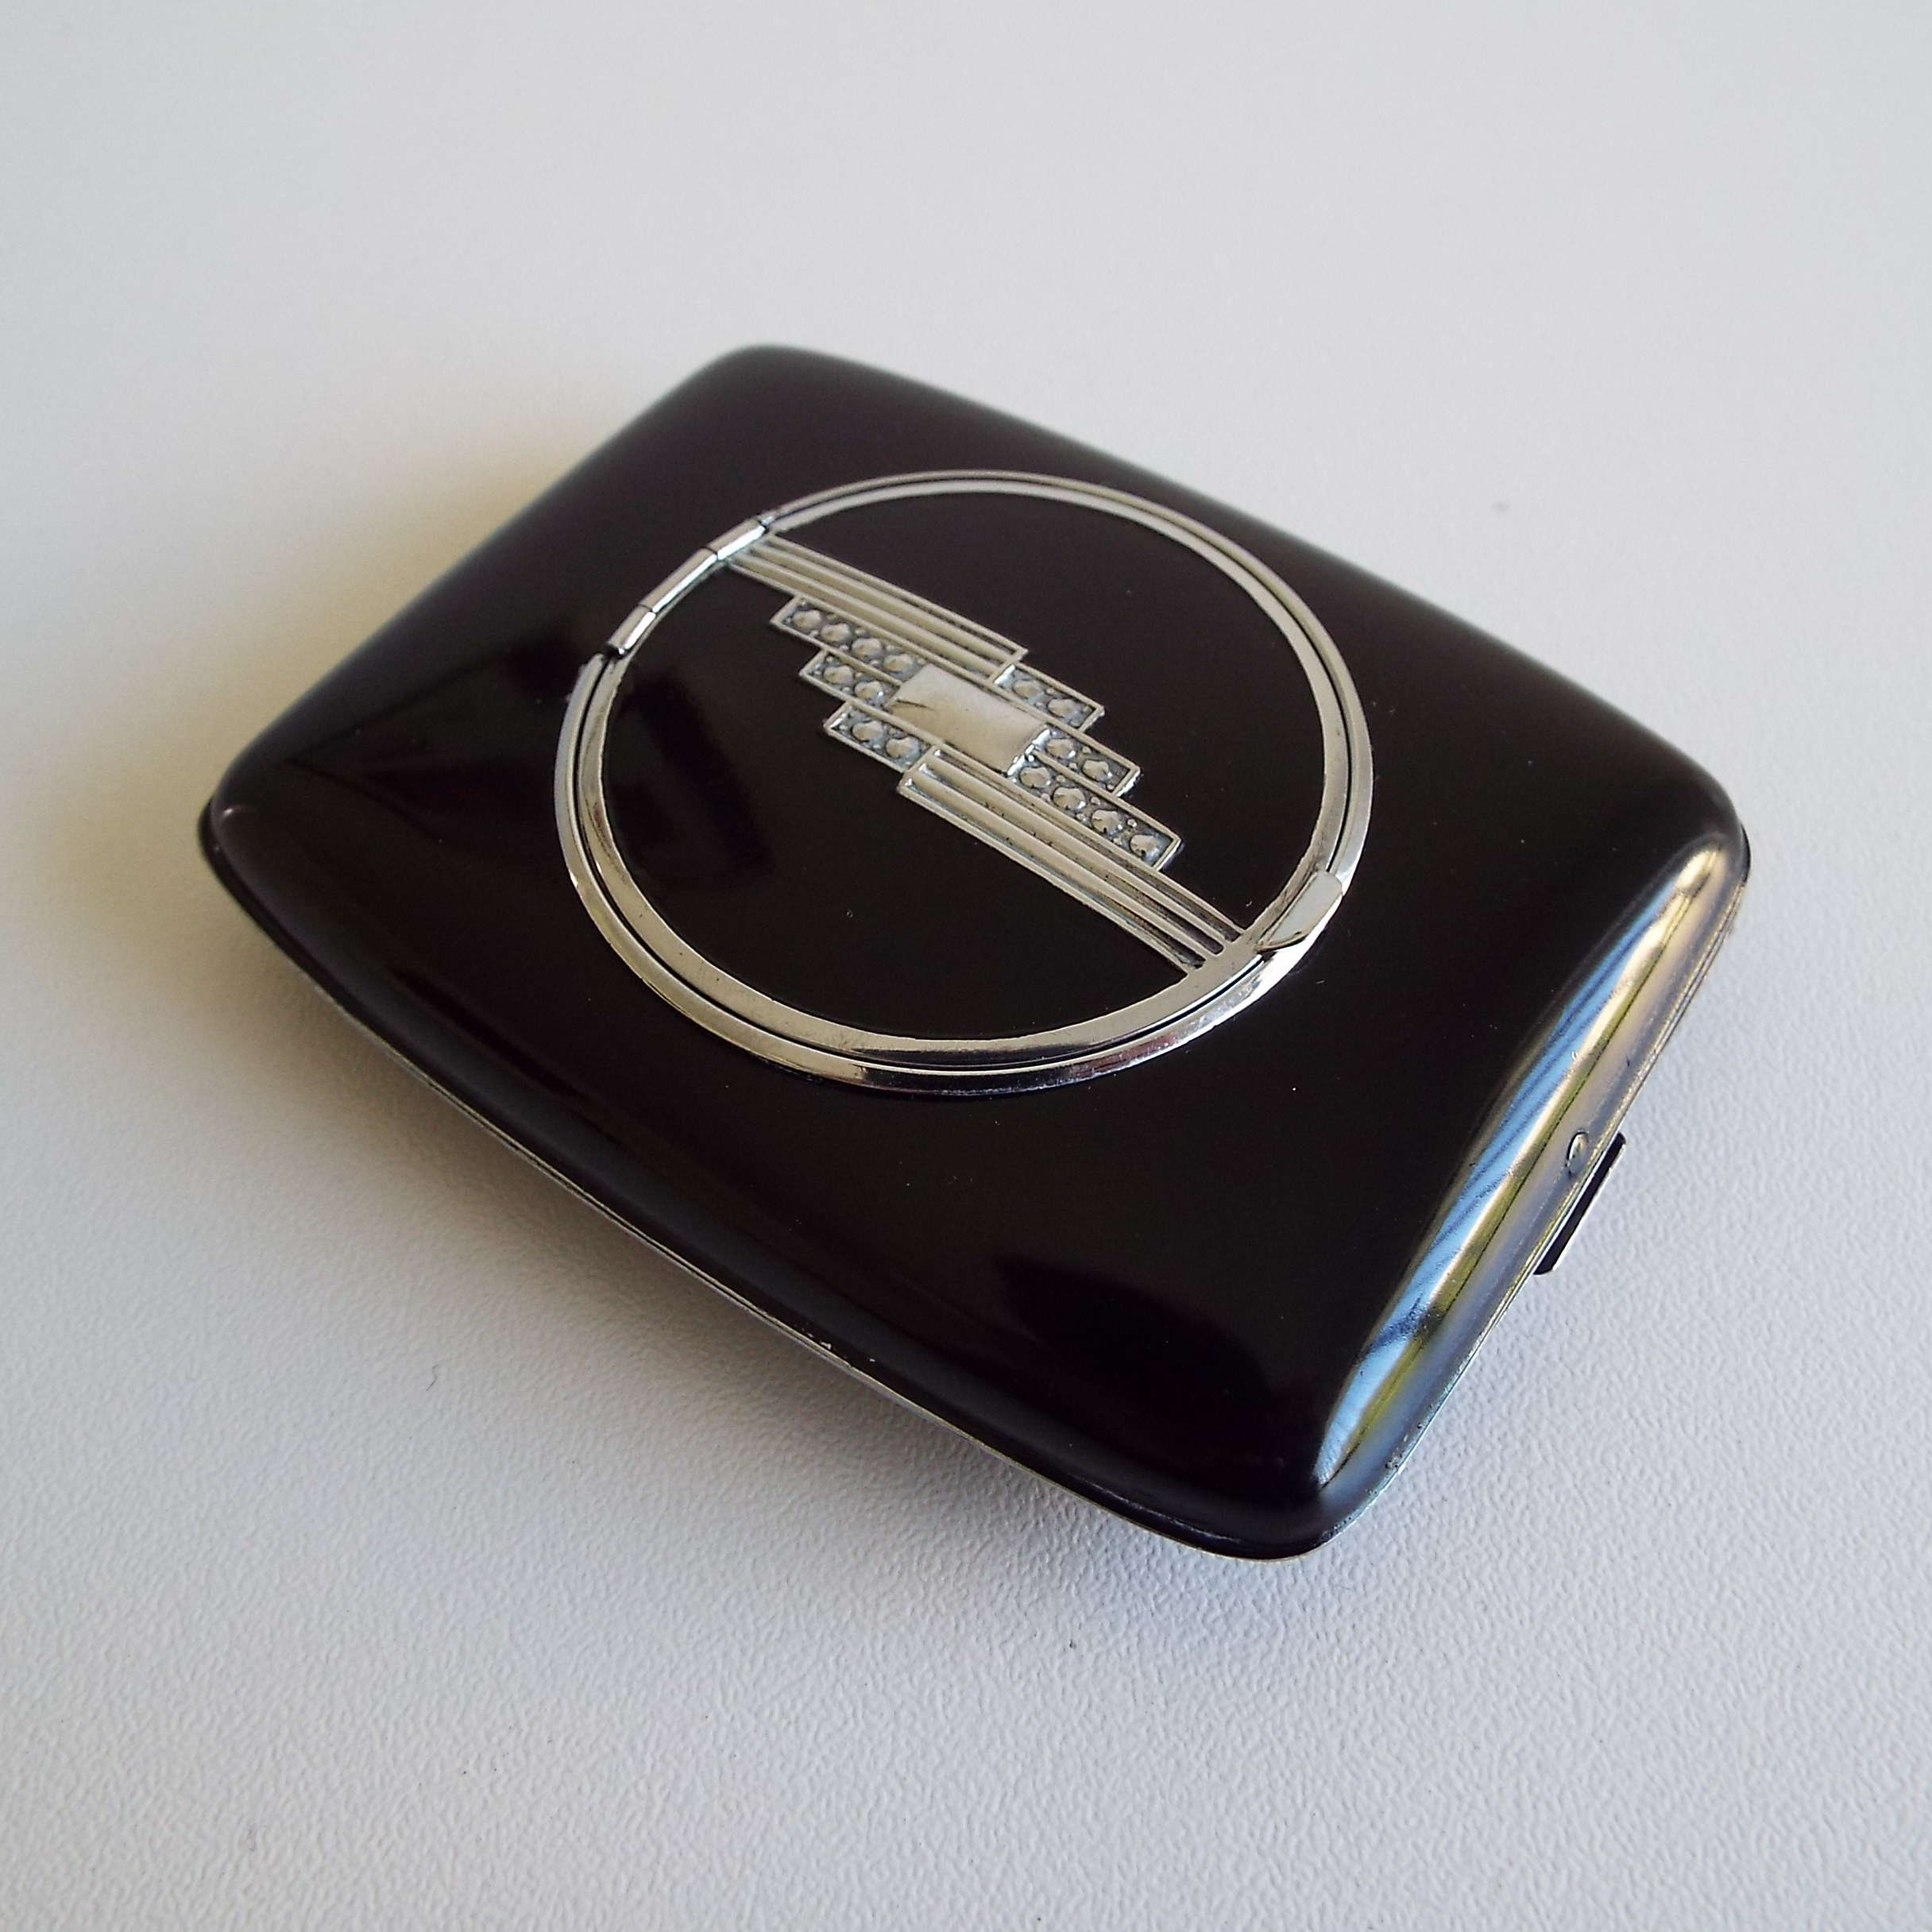 Pin on Compacts